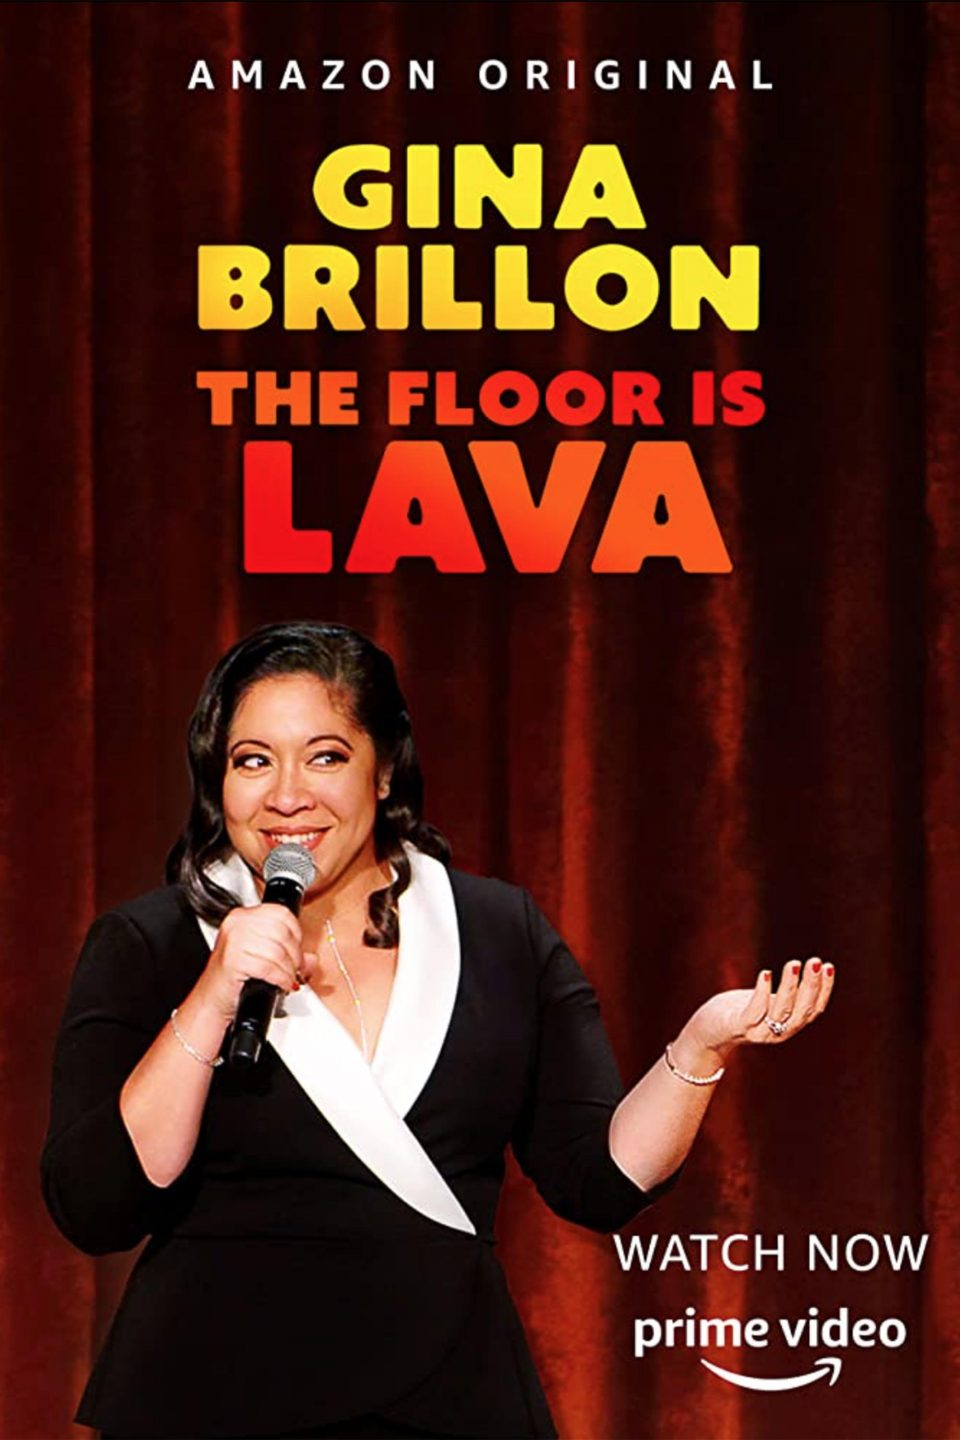 Gina Brillon The Floor Is Lava Amazon Comedy Dynamics V